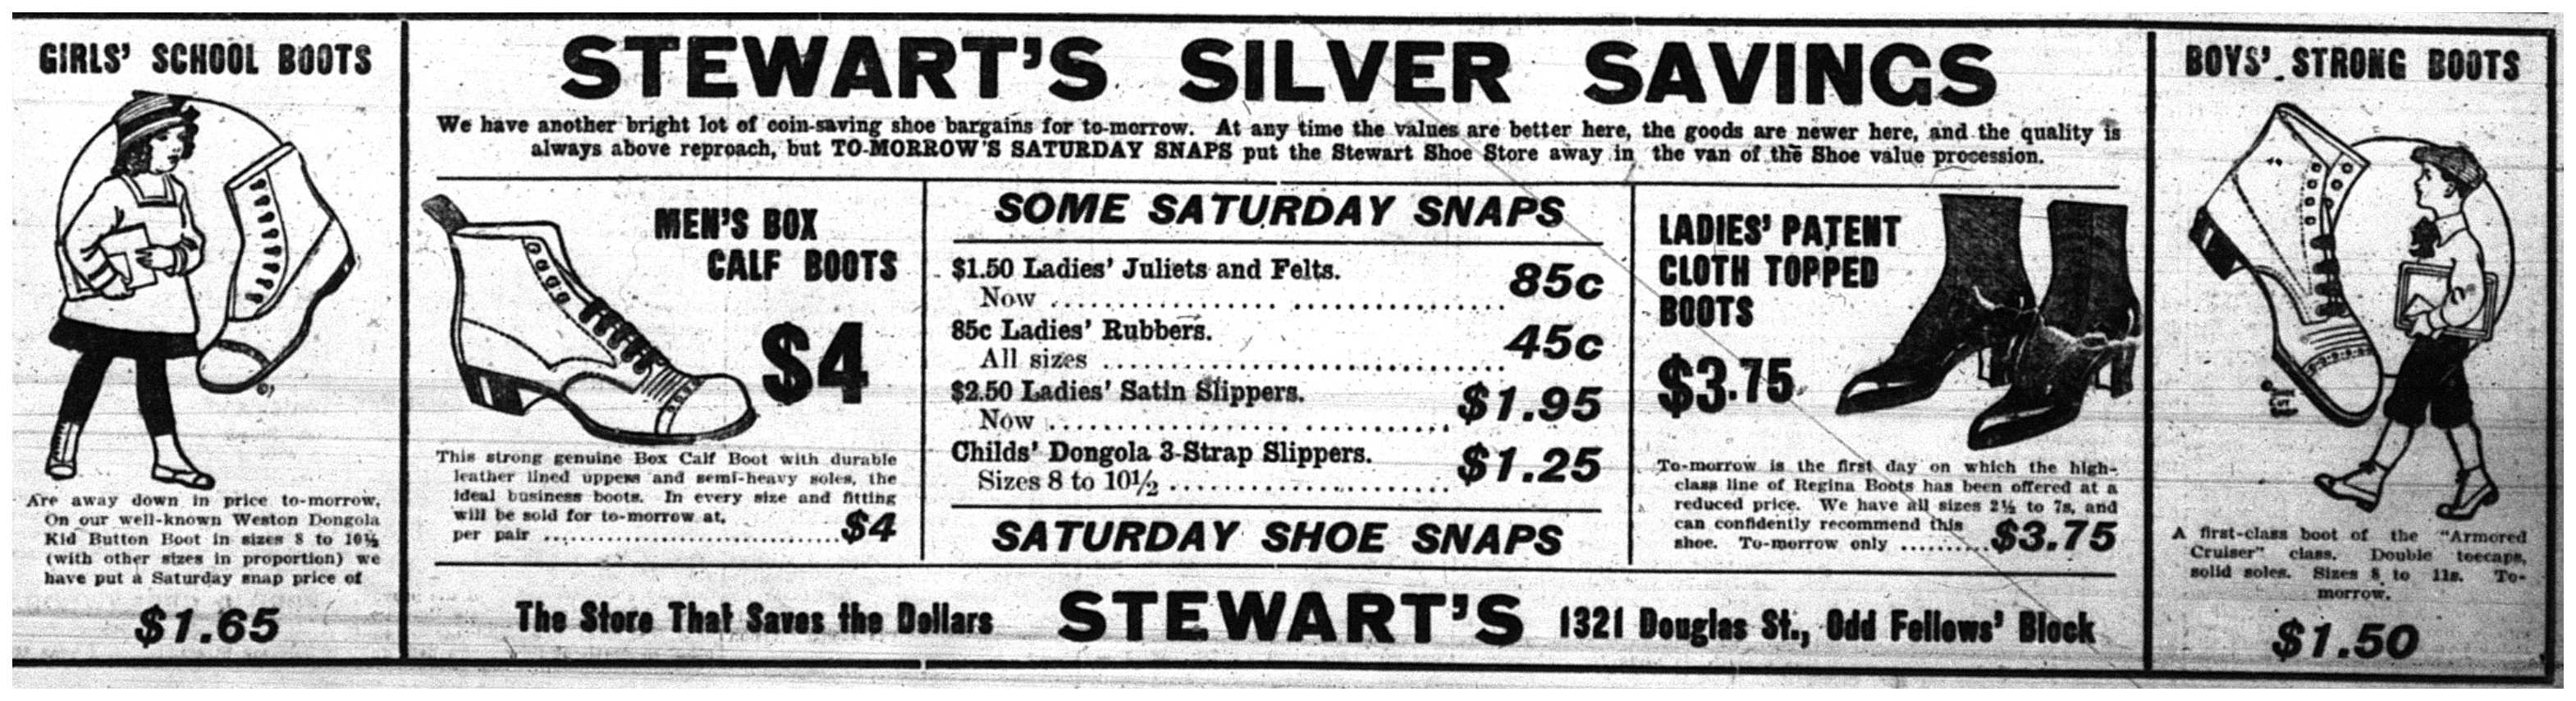 Stewart's Silver Savings Ad